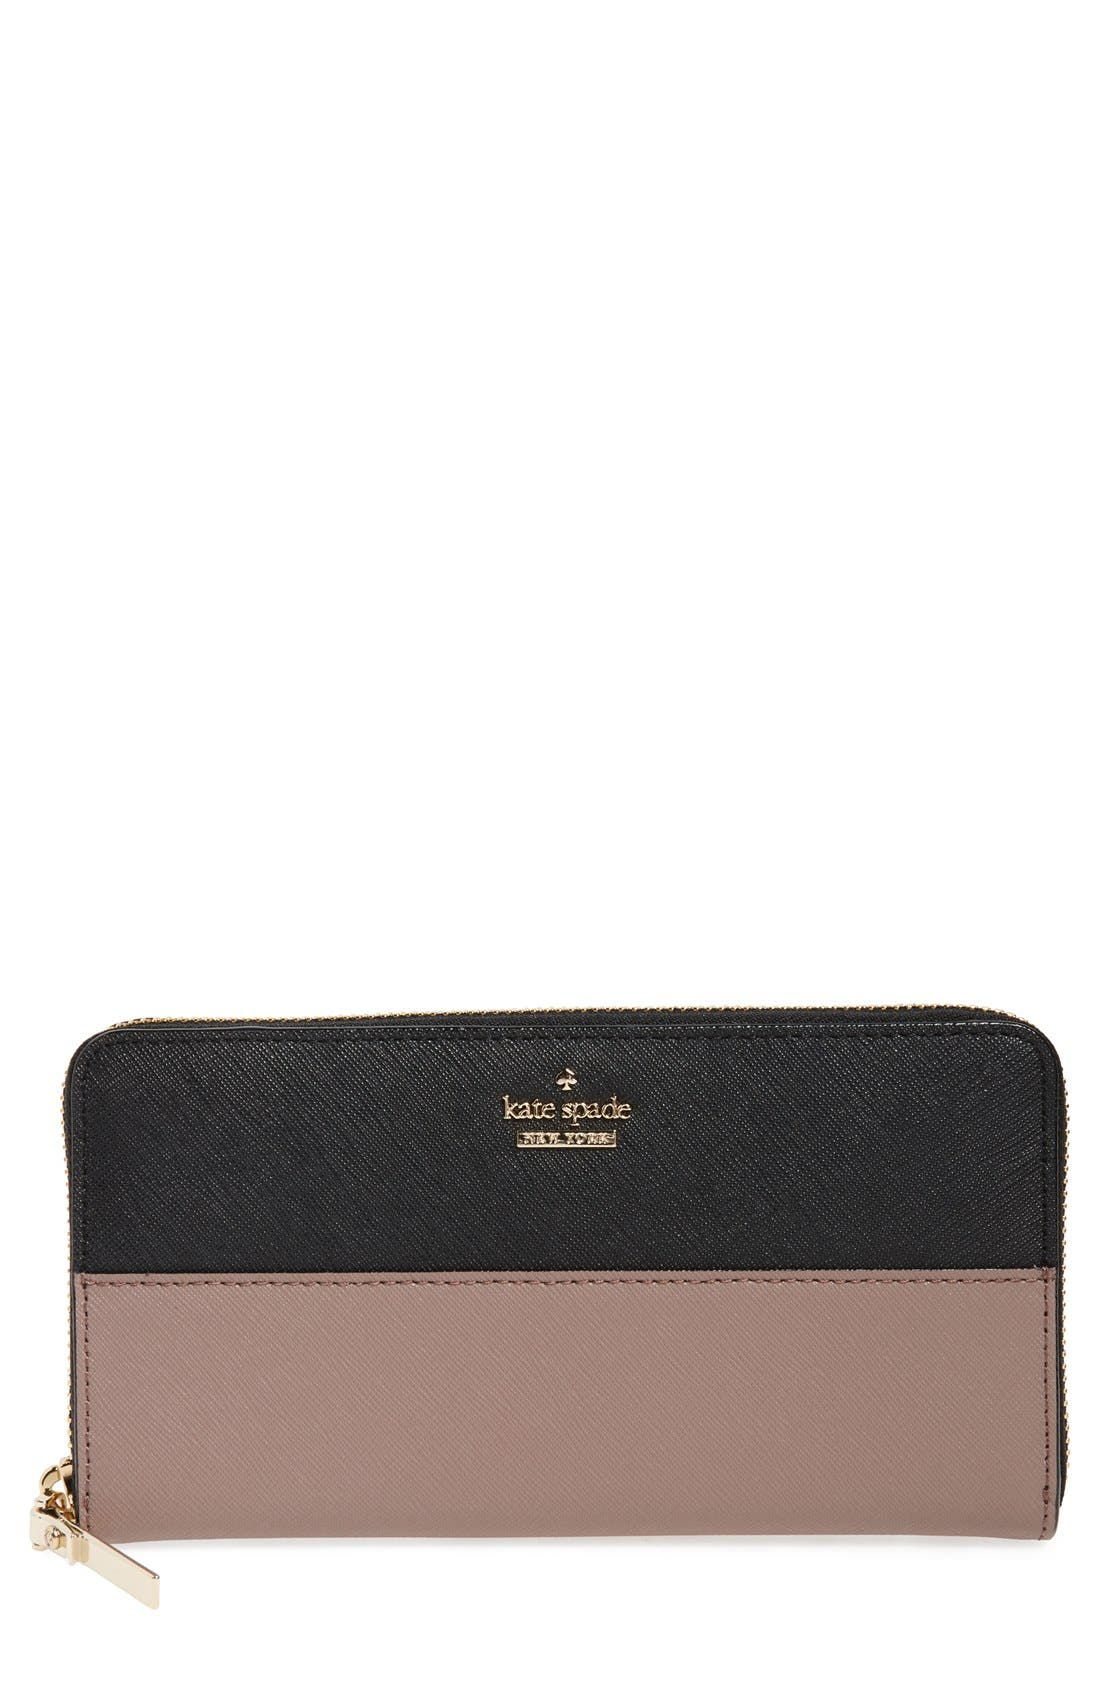 'cameron street - lacey' leather wallet,                             Main thumbnail 11, color,